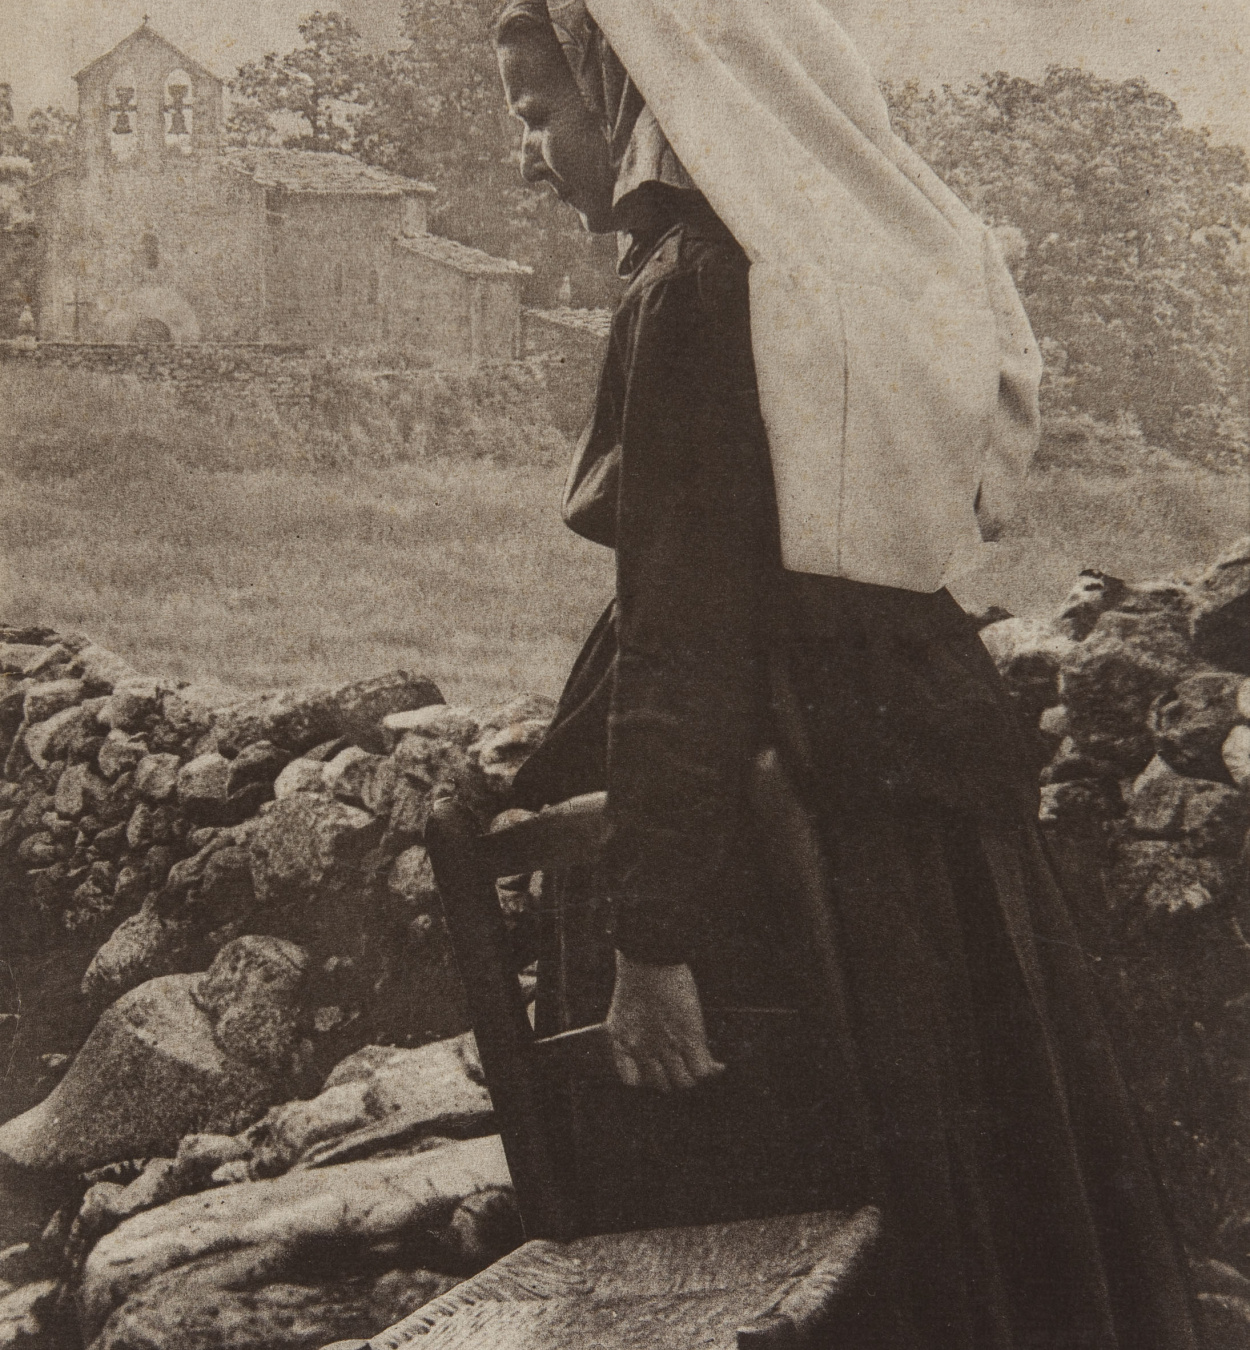 Claudi Carbonell - Peasant going [to the] church - Undated